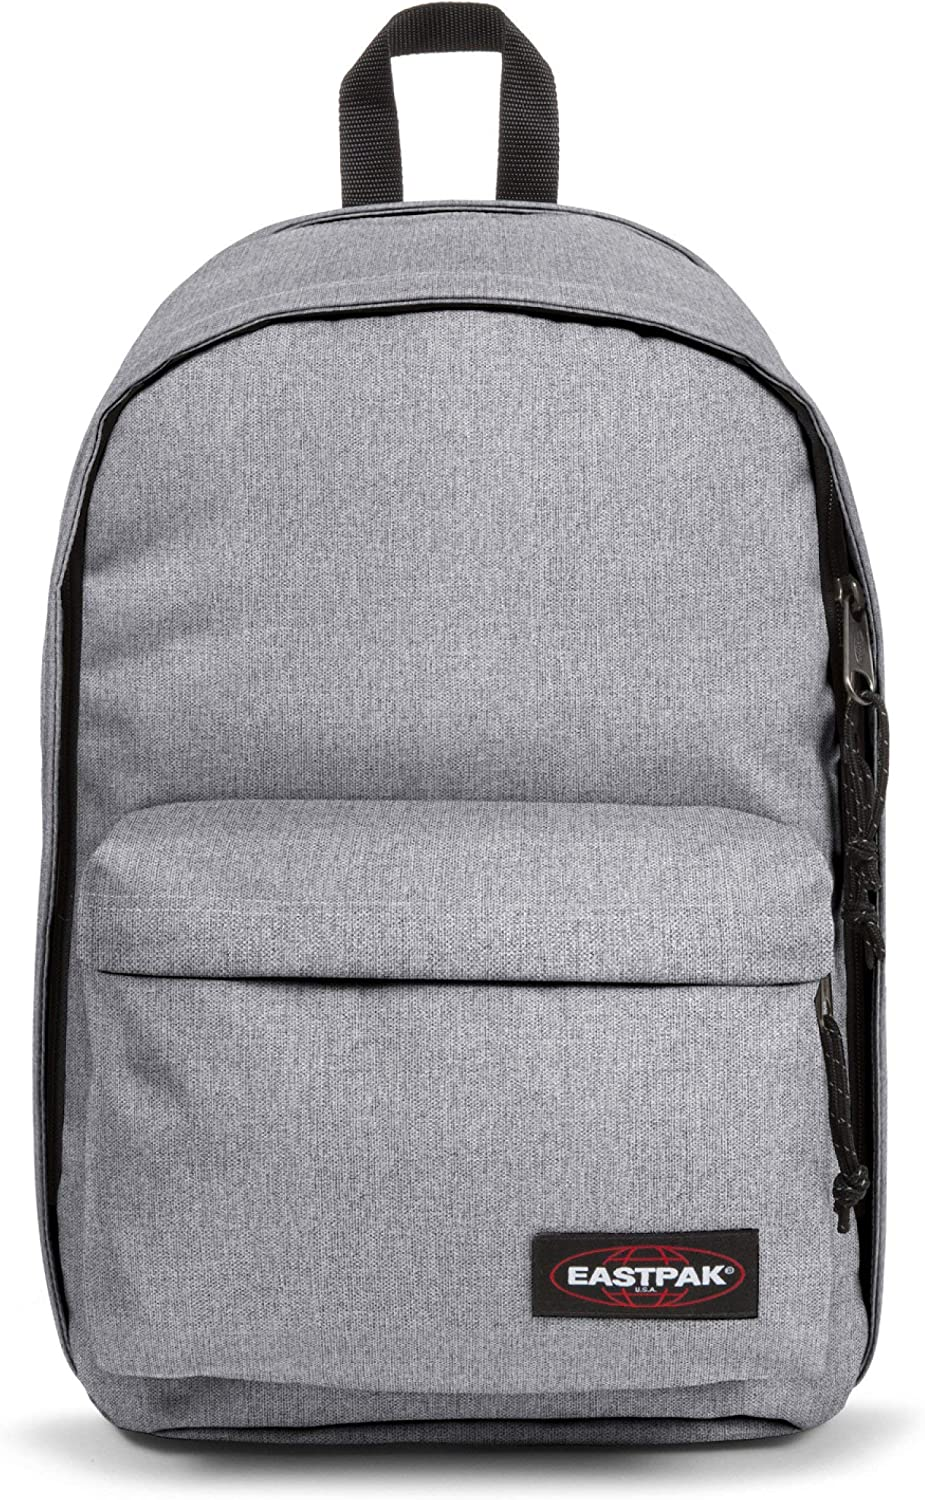 Eastpak Women's Back to Work Backpack, Sunday Grey, One Size